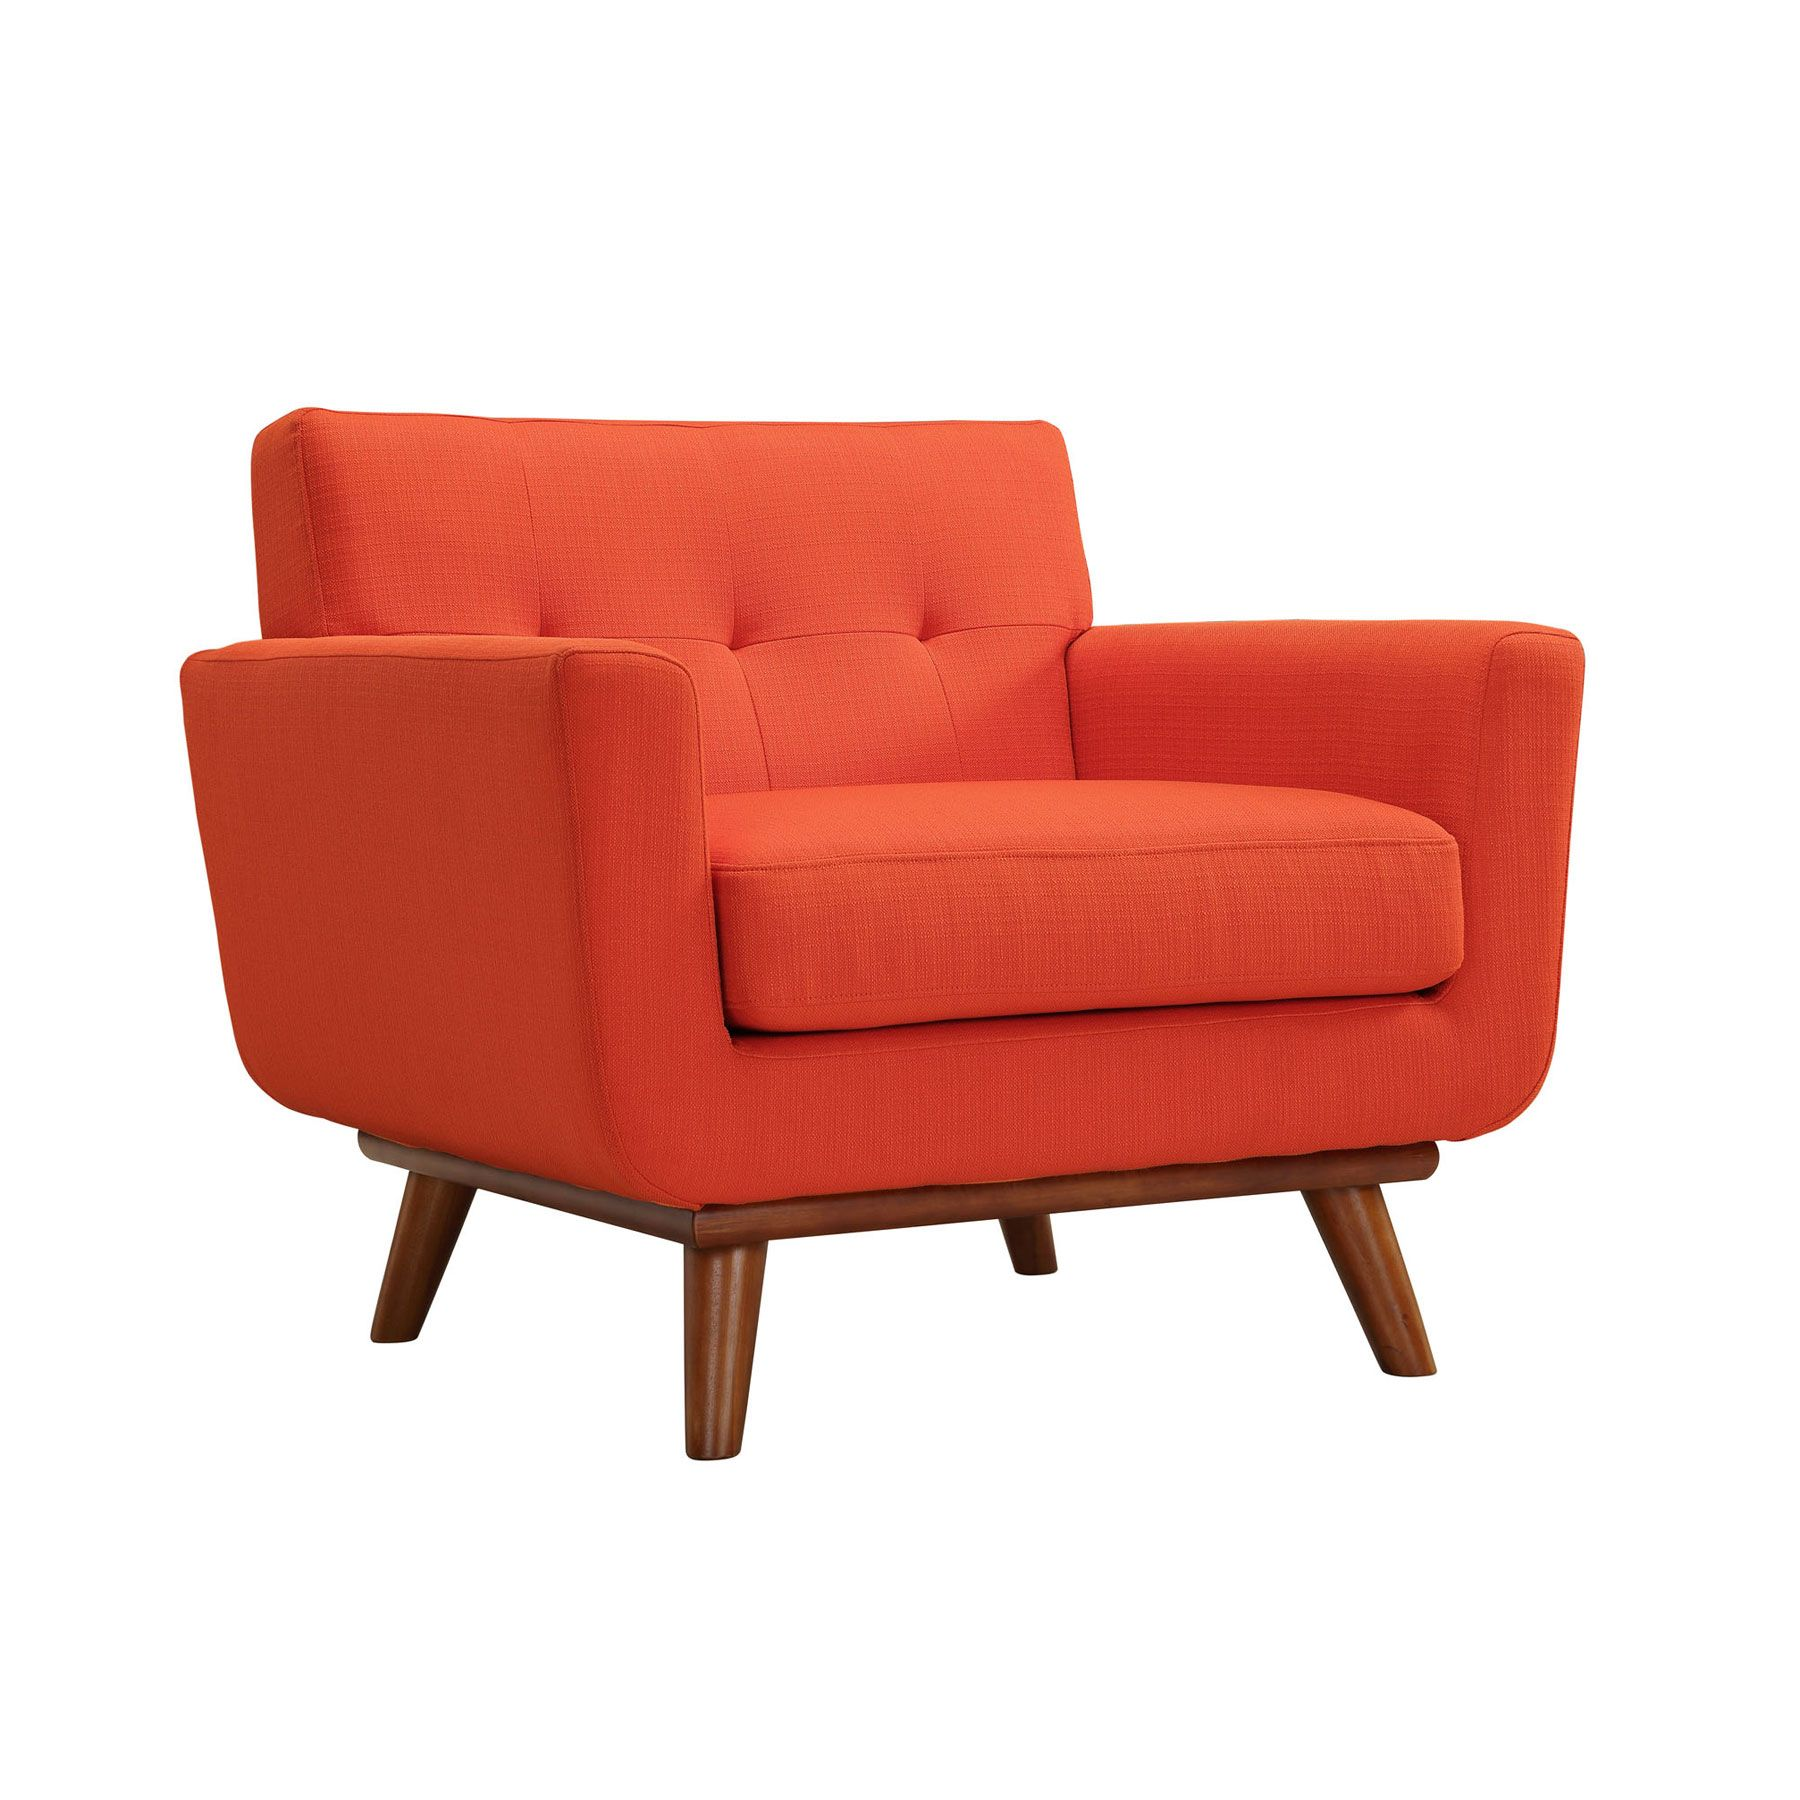 Spiers armchair in tangerine home pinterest armchairs nooks